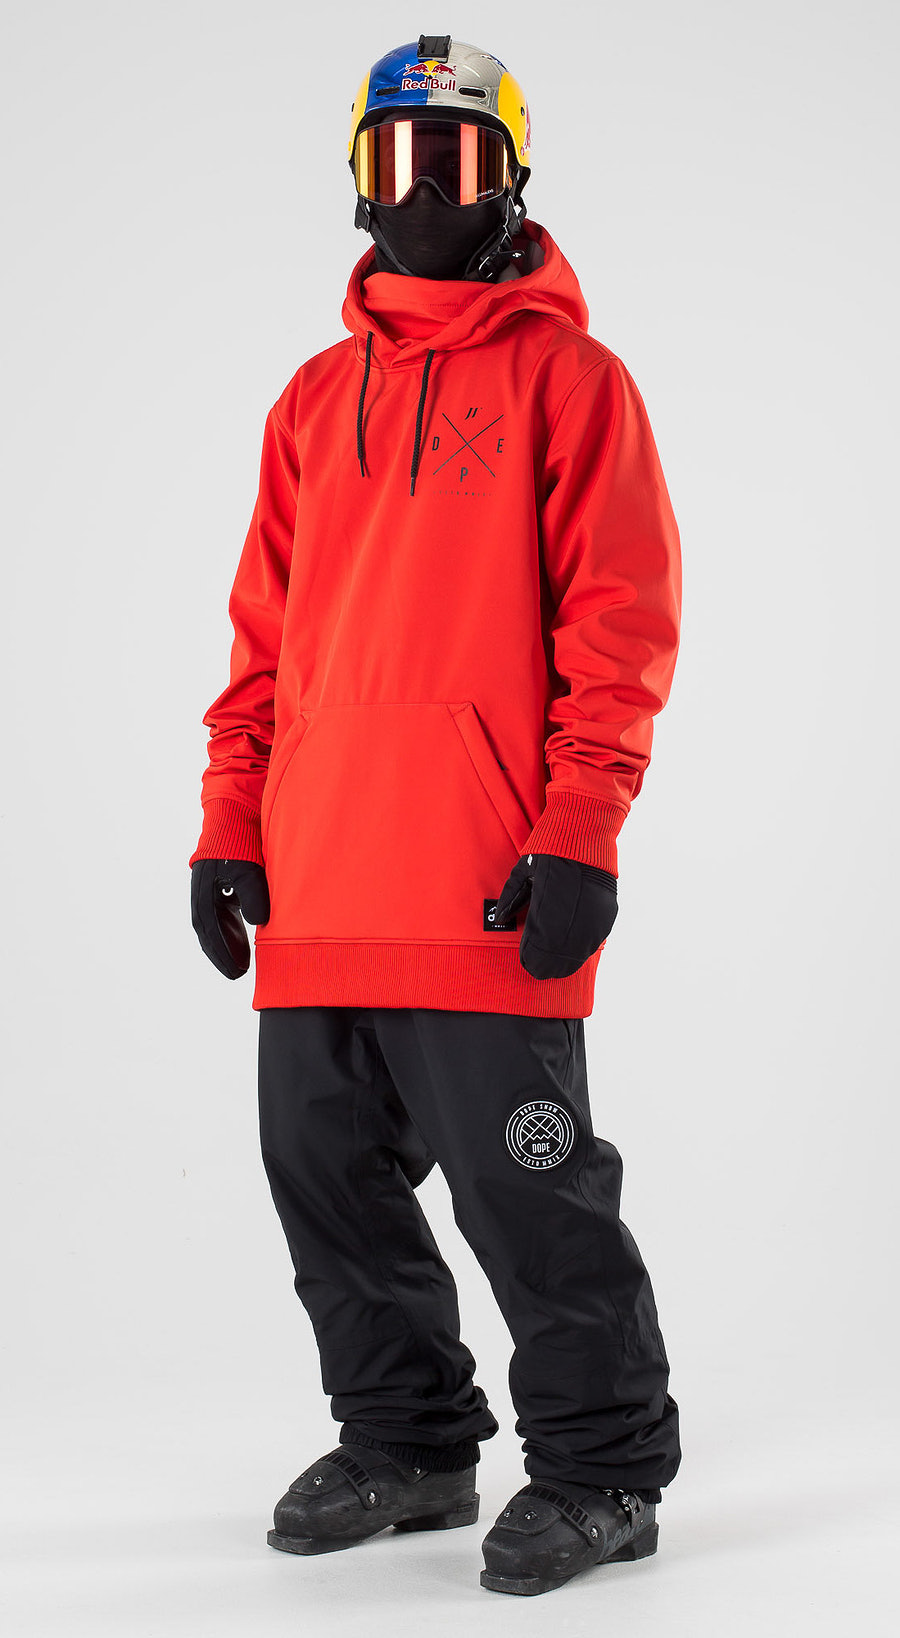 Dope JT Yeti Red Ski clothing Multi